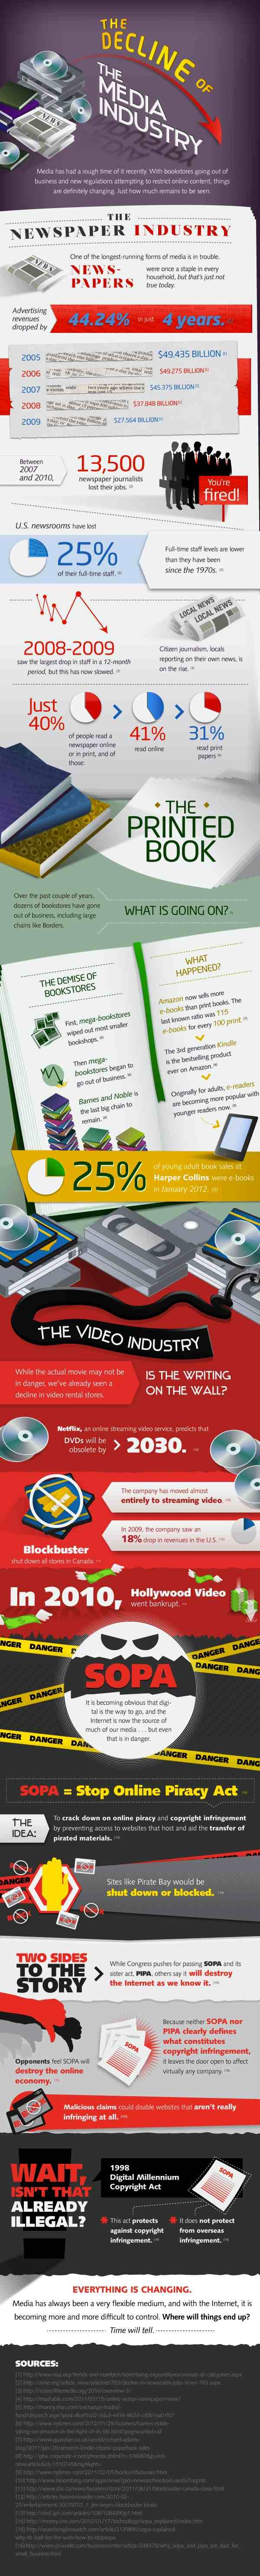 The Decline Of The Media Industry